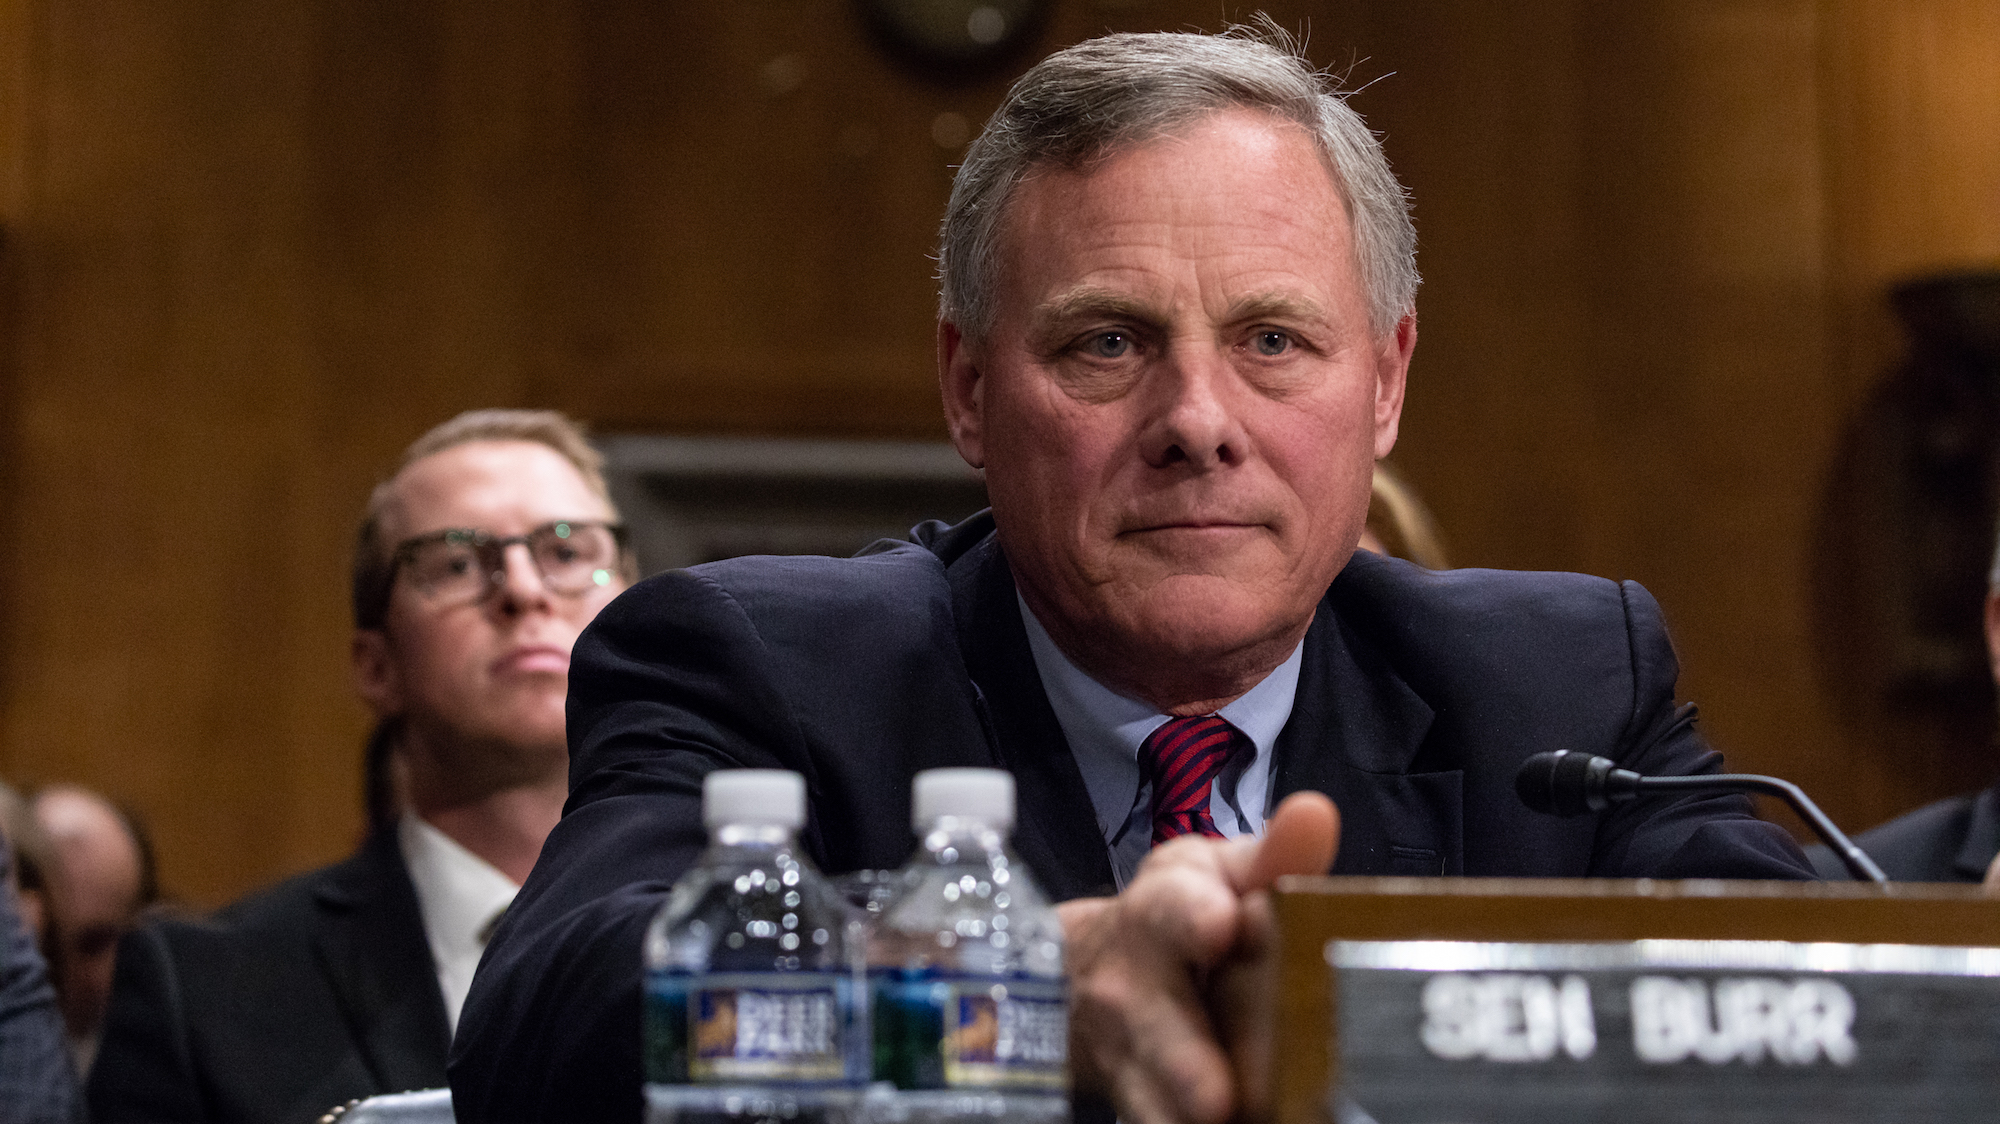 Senate intel committee concludes Putin personally approved meddling to aid Donald Trump